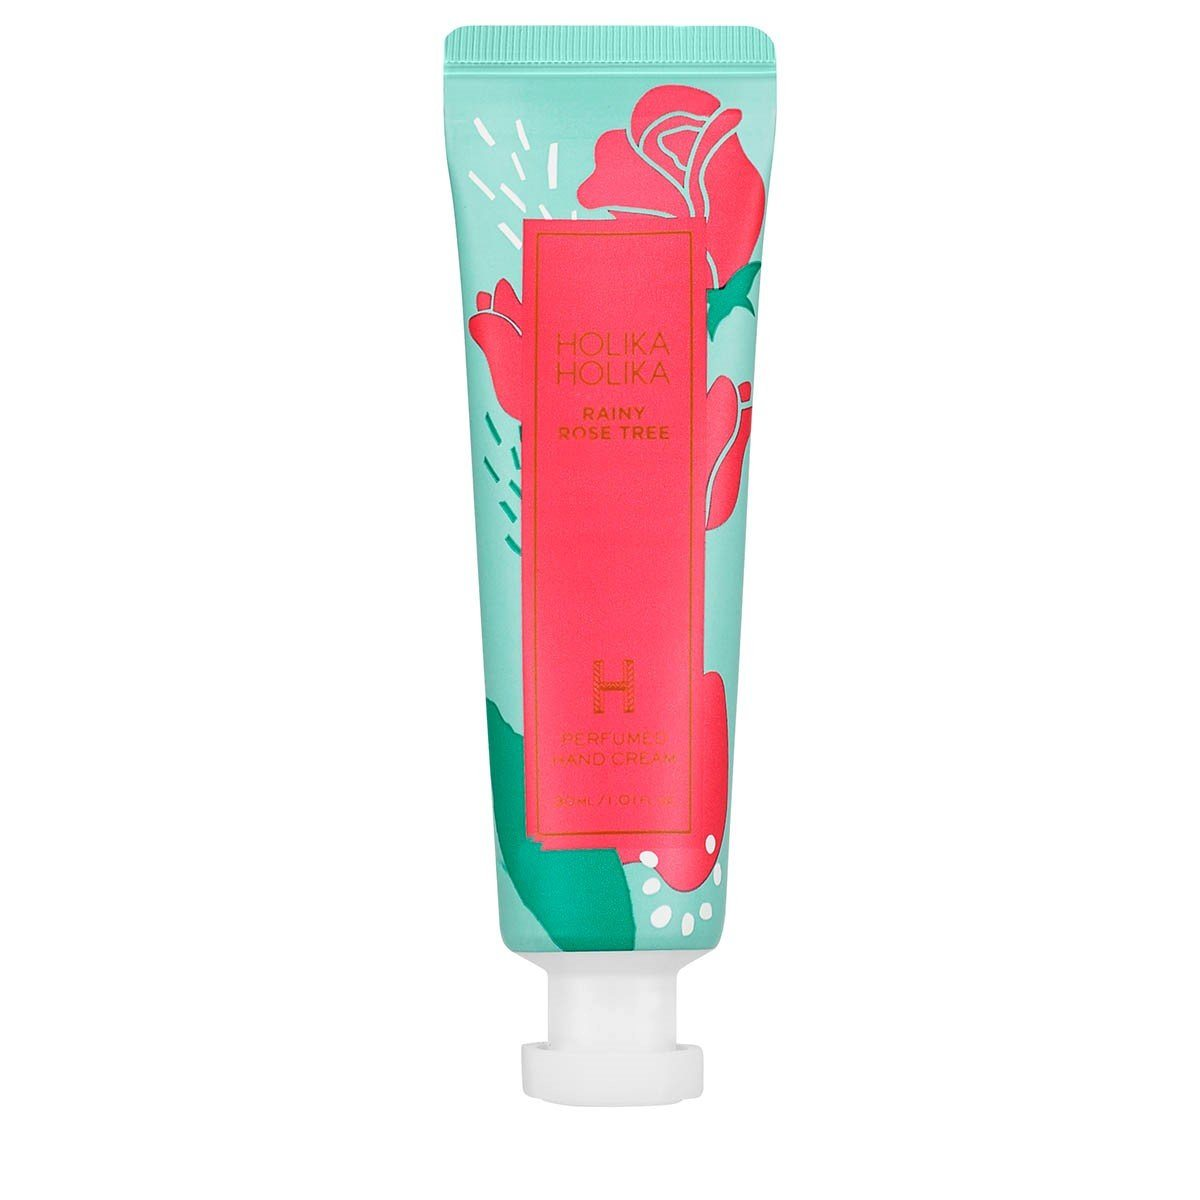 Health & Beauty > Personal Care > Cosmetics > Skin Care > Lotion & Moisturizer - Rainy Rose Tree Perfumed Hand Cream Krem Do Rąk 30 Ml